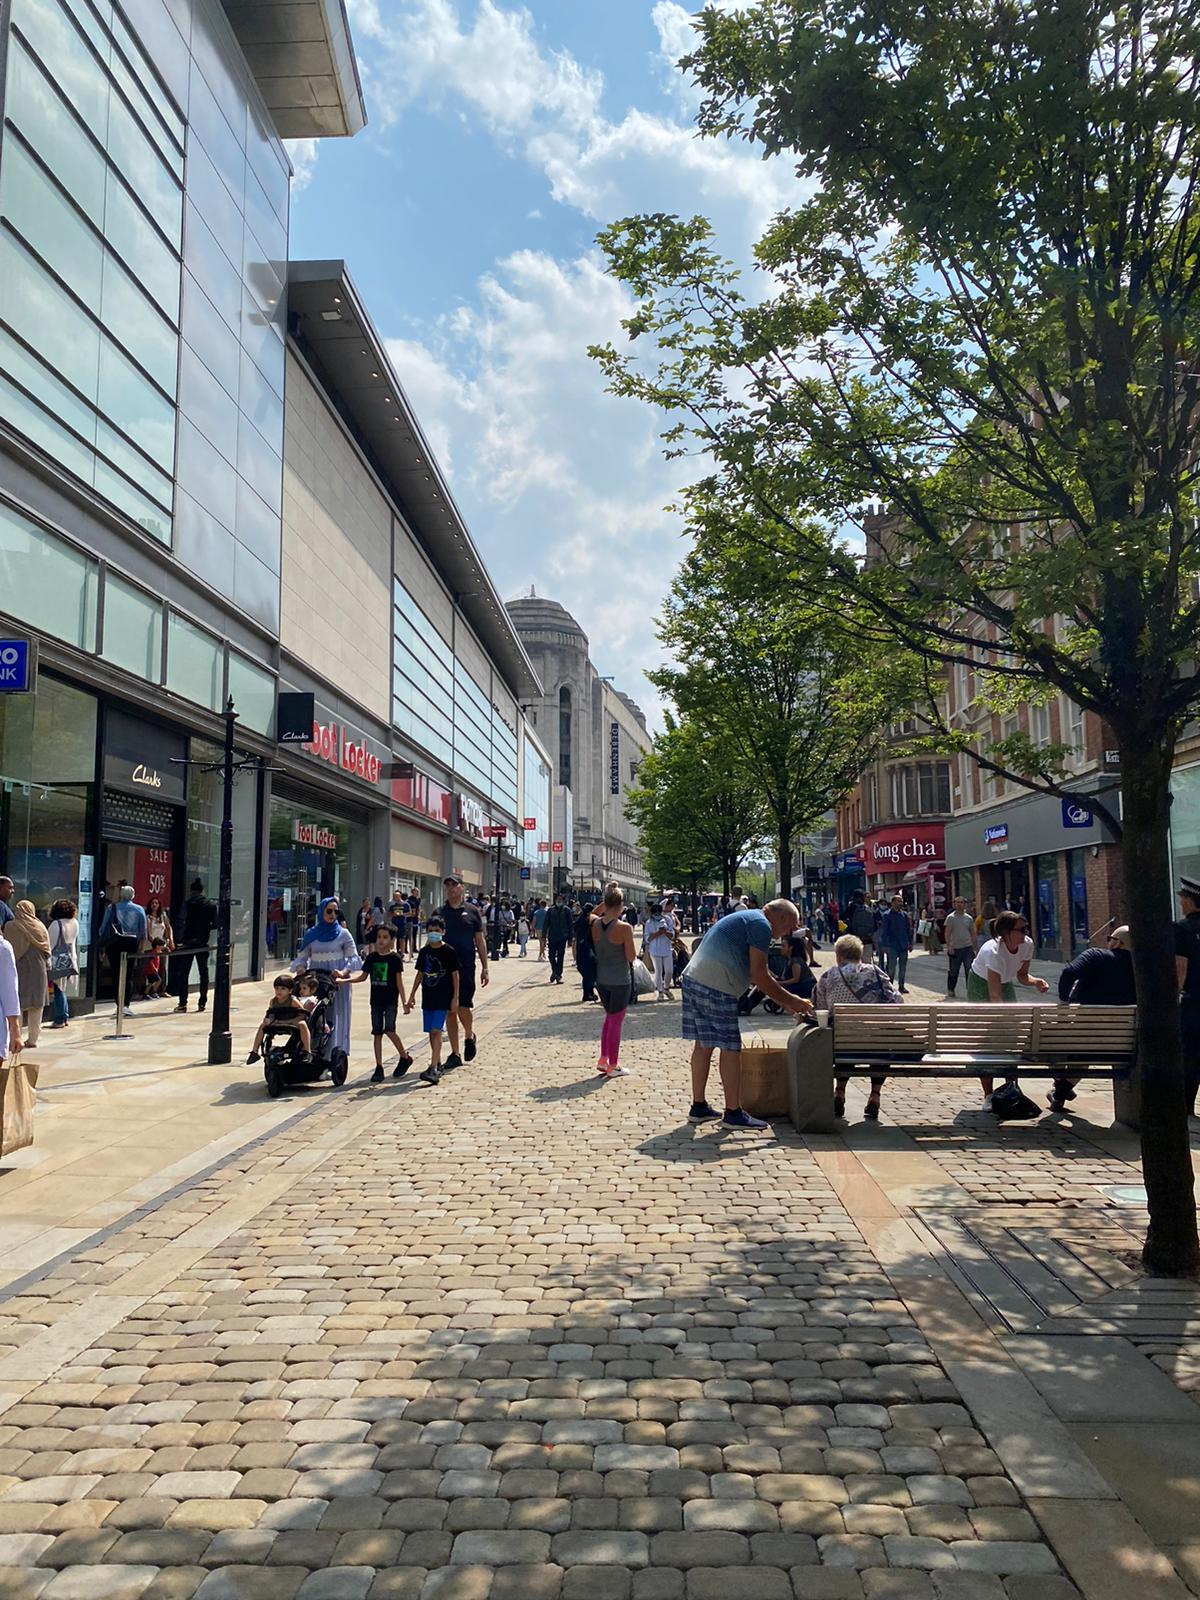 Photos: Manchester comes back to life as shops and businesses reopen, The Manc